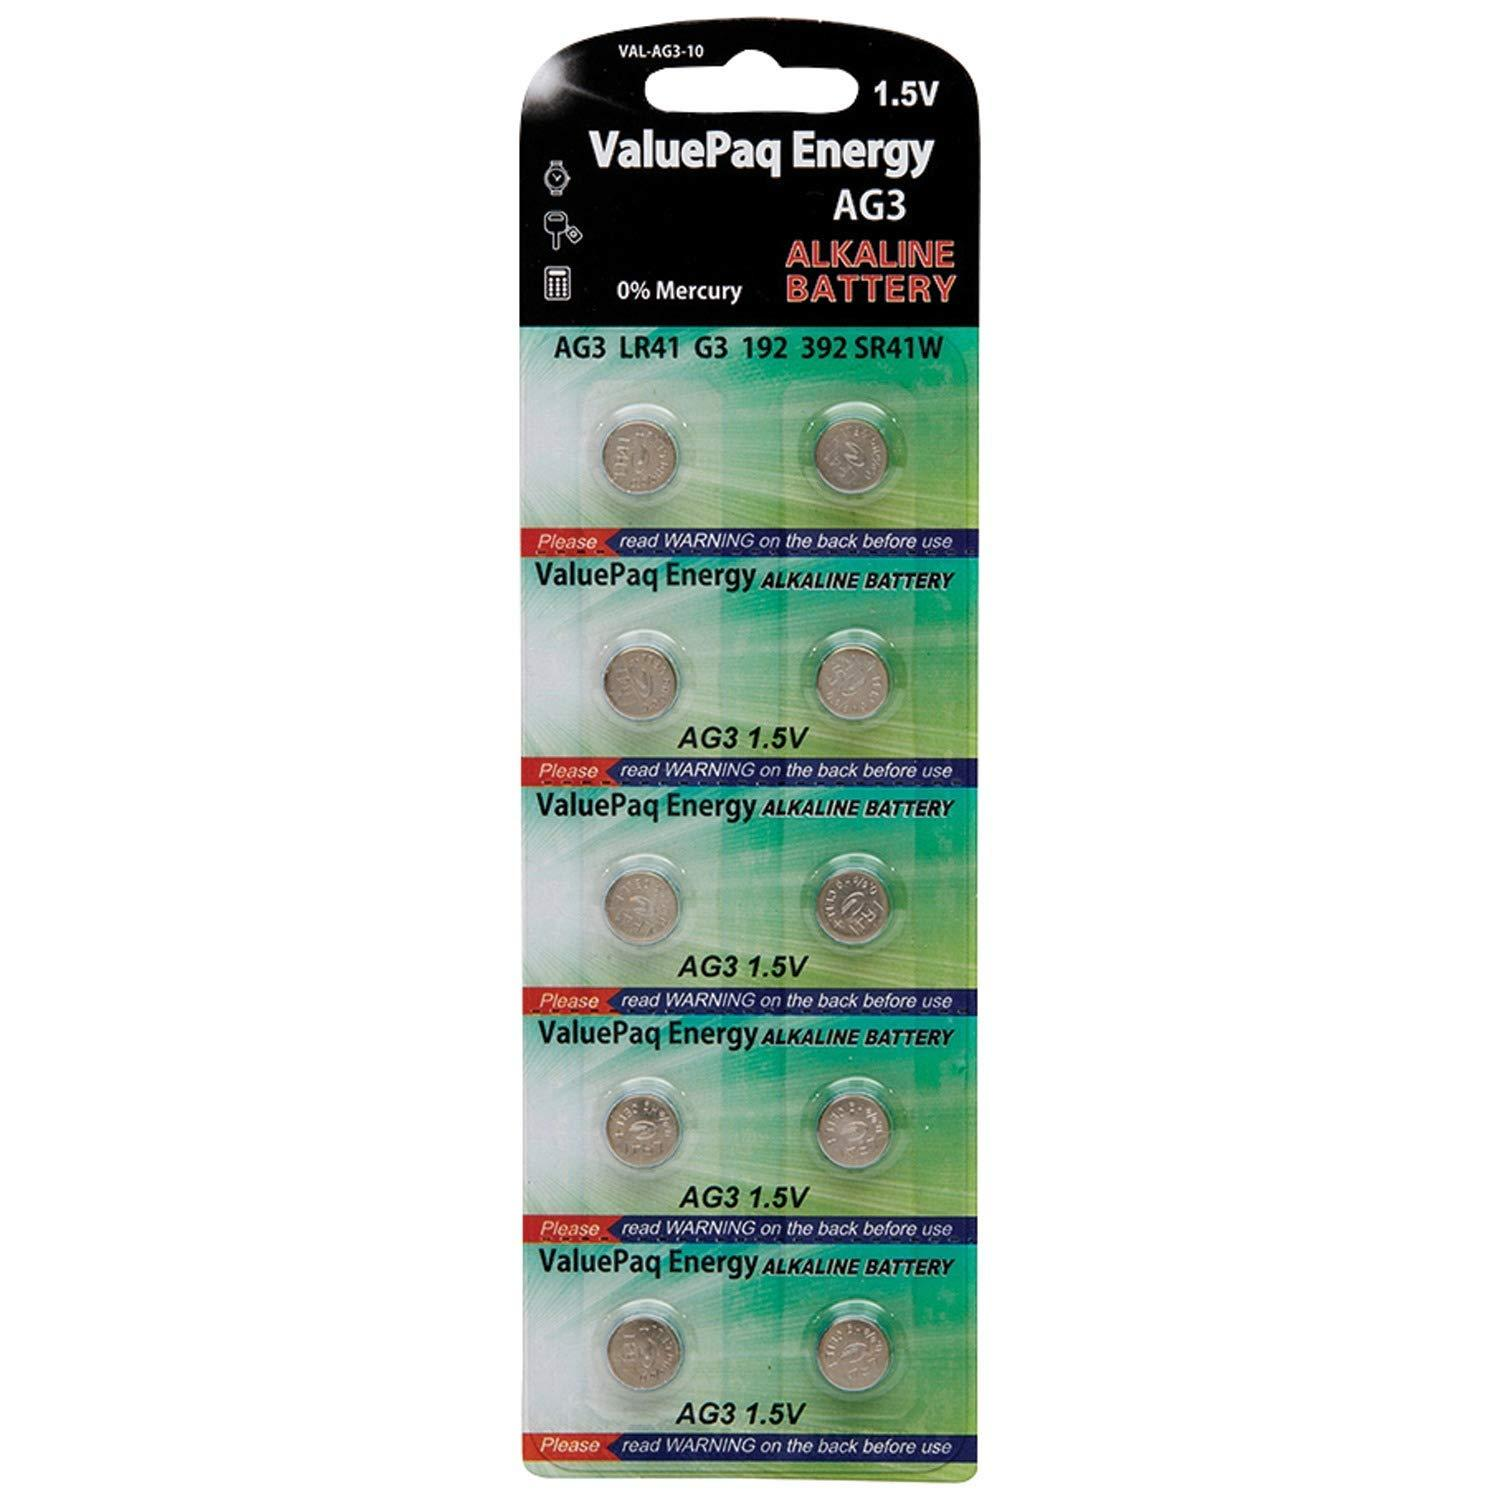 10 PACK ALKALINE REPLACEMENT FOR AG3, SG3, 384, 392, LR41W, SR41SW,